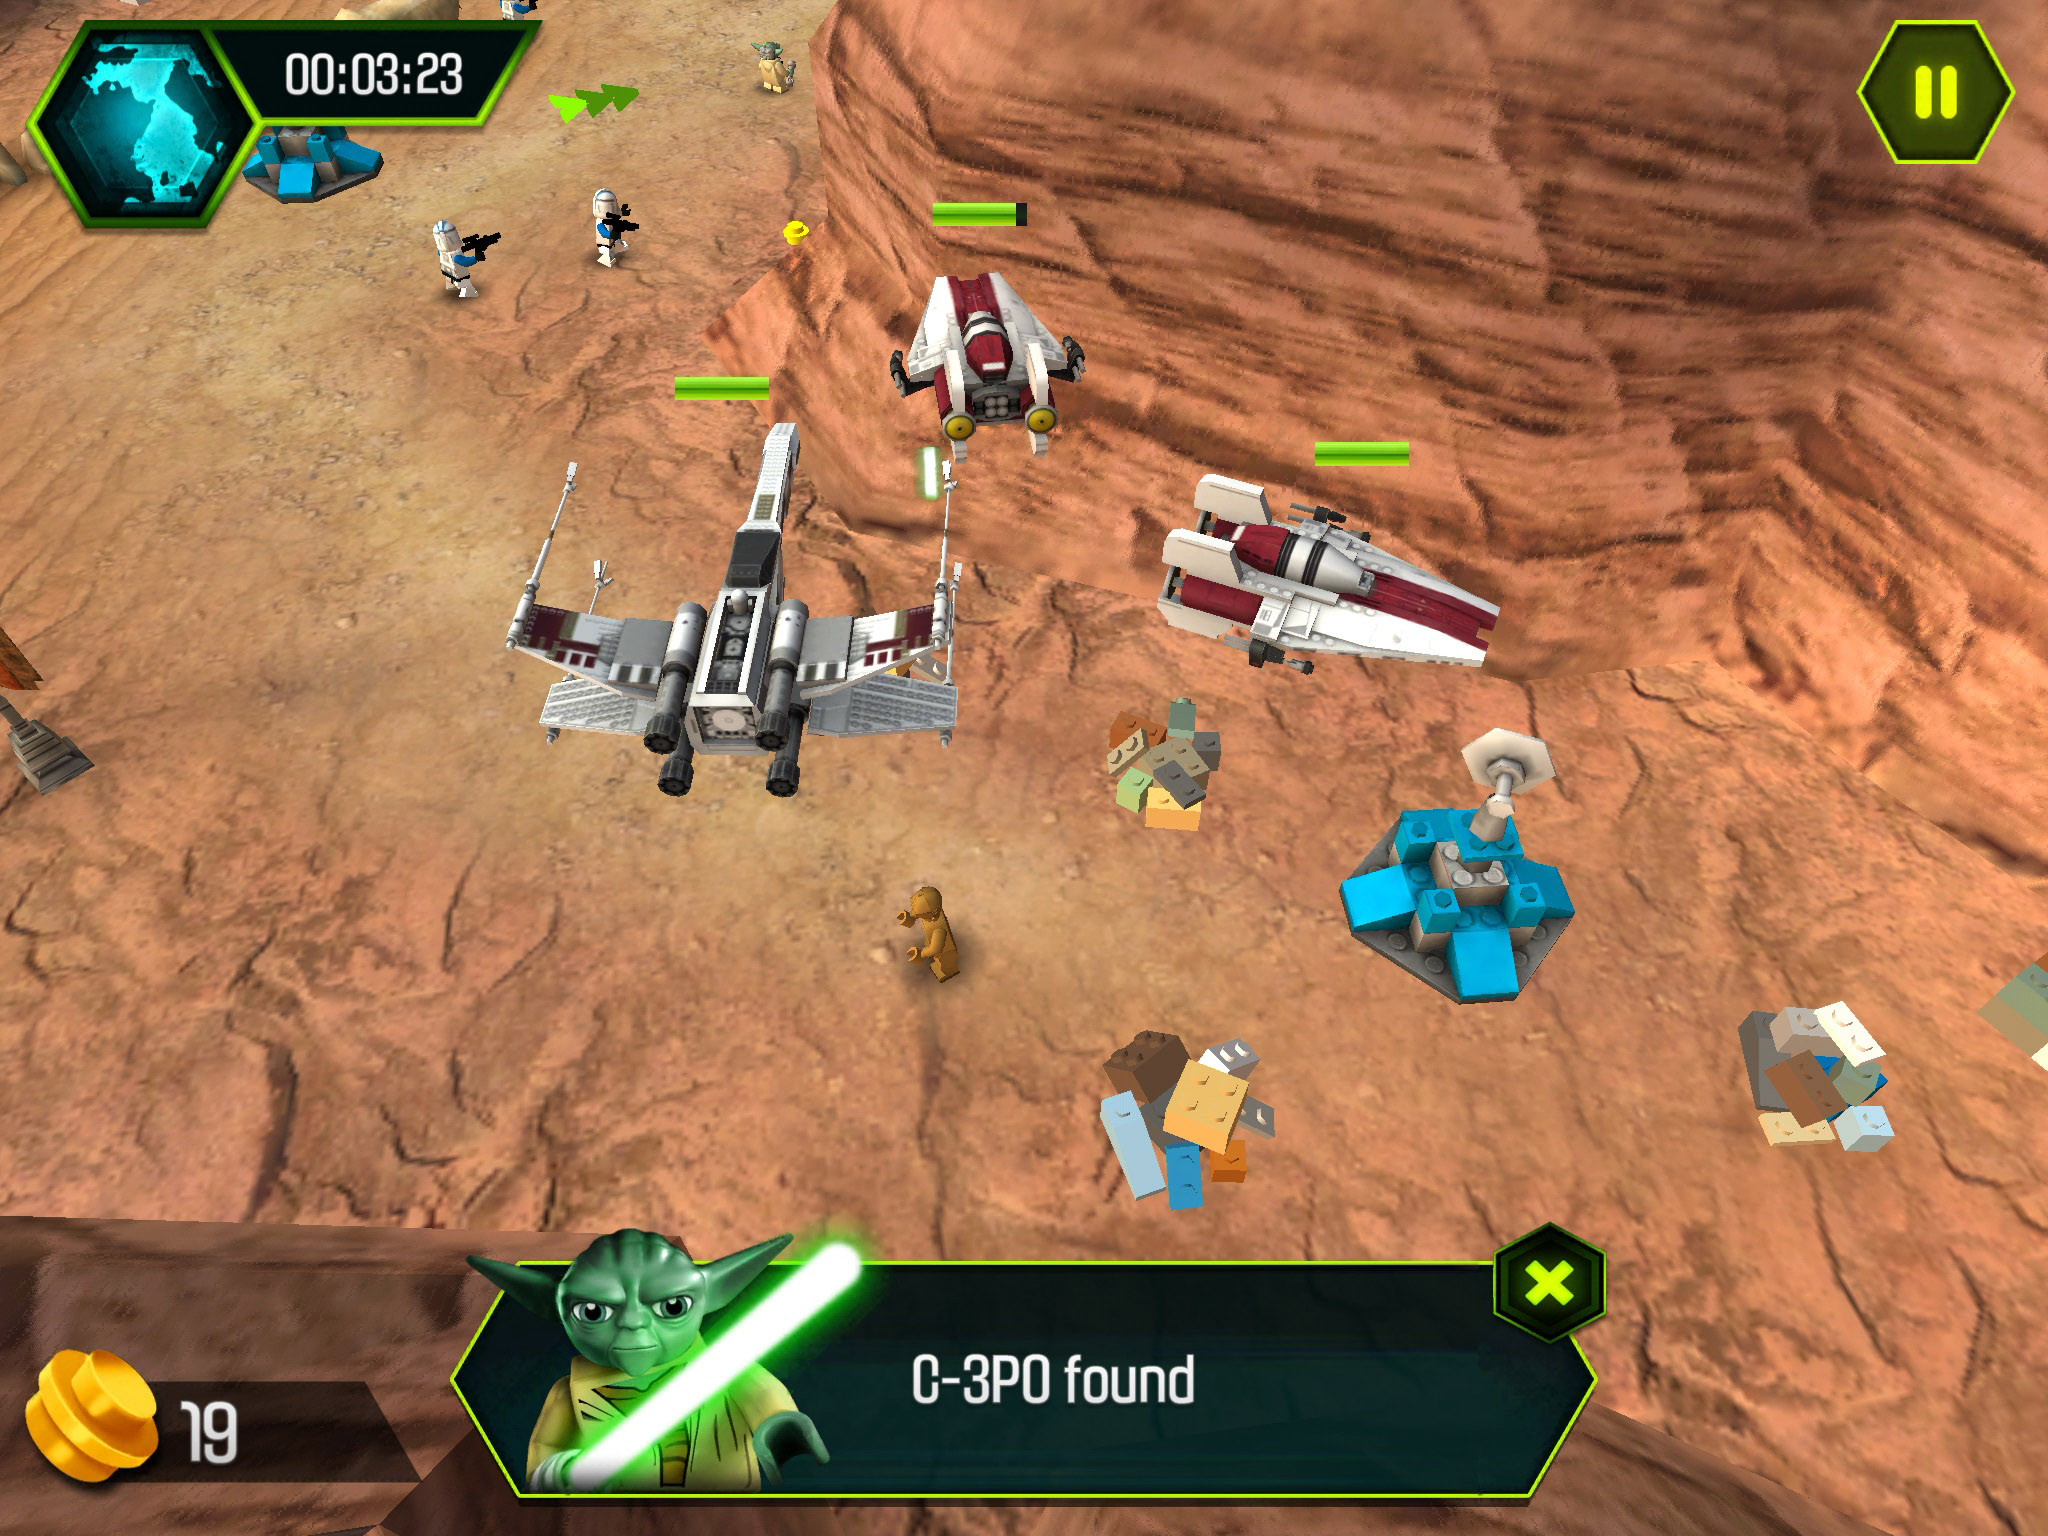 Lego Star Wars The Yoda Chronicles Force Pushes itself onto the App Store in time for Star Wars Day